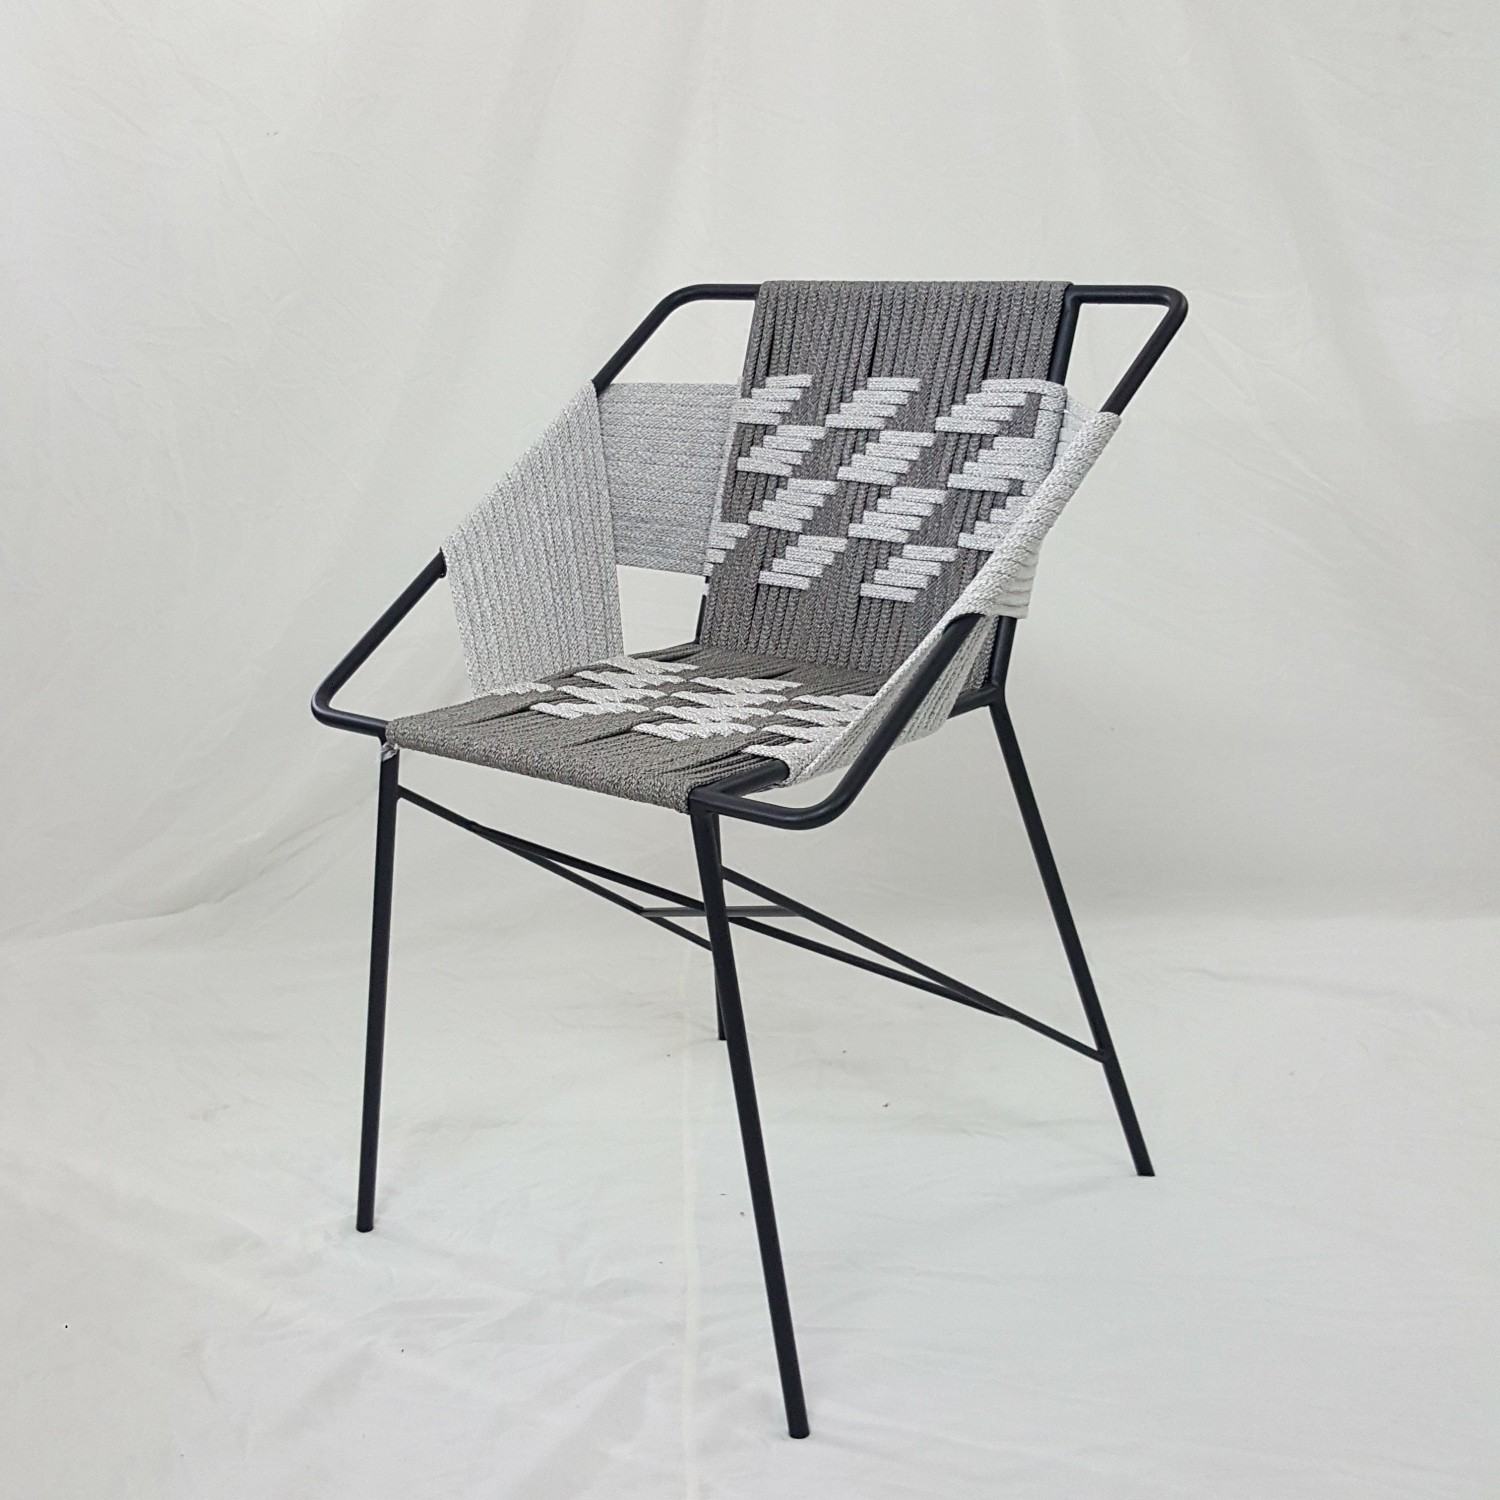 Sputnik Chair 2